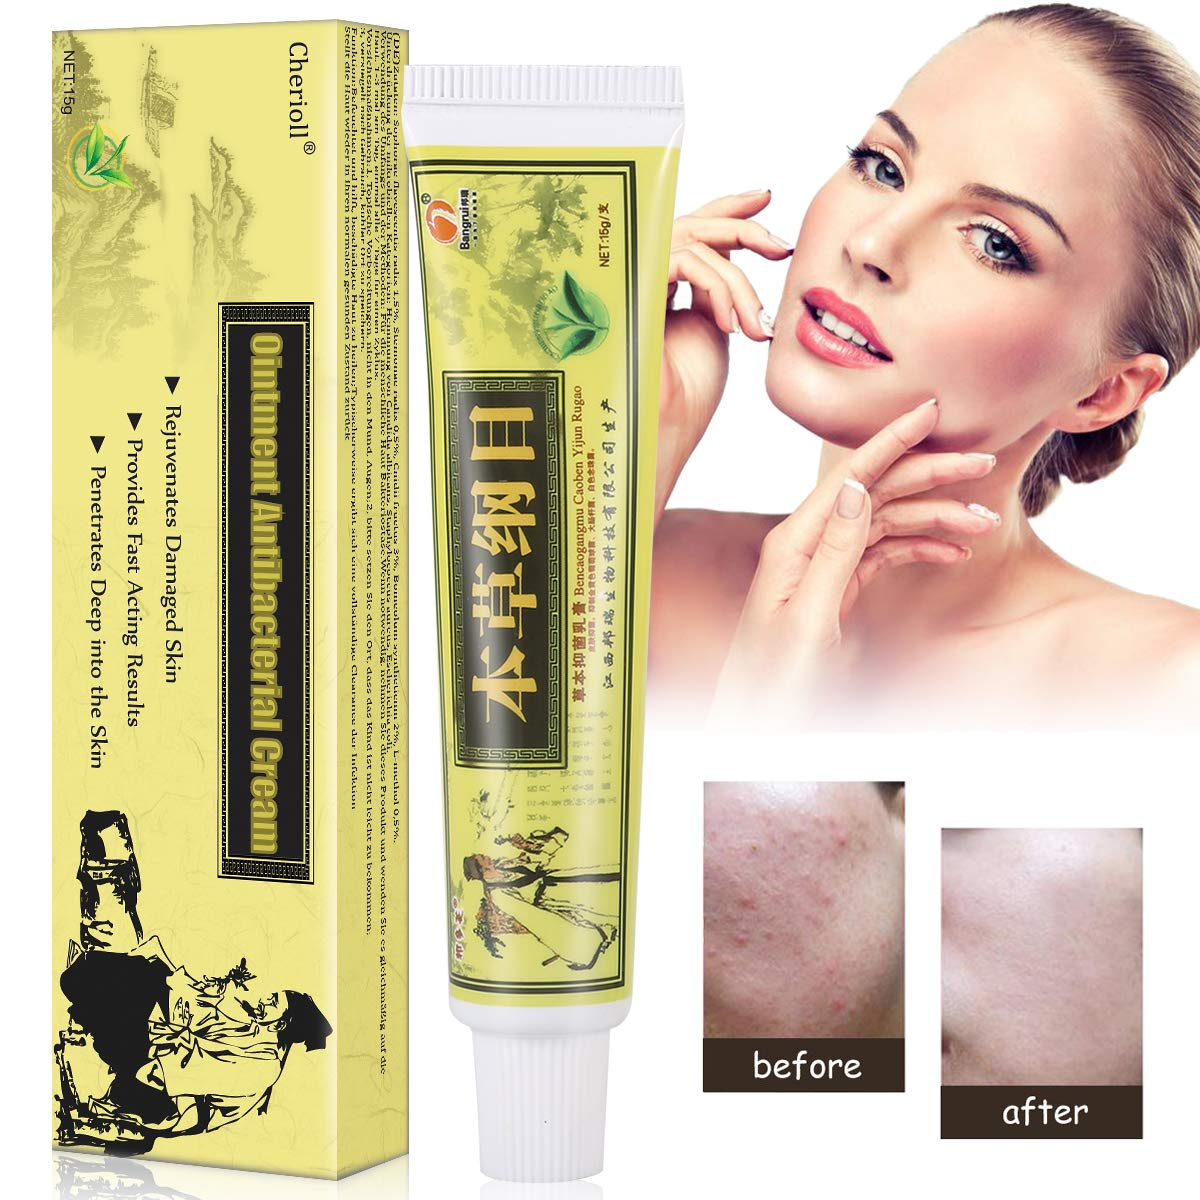 Psoriasis Treatment,Psoriasis Cream for Dermatitis, Eczema,Natural Chinese Herbal Cream Eczema Dermatitis Psoriasis Vitiligo Skin Disease Treatment,1 Tube/Box (1) by Cherioll